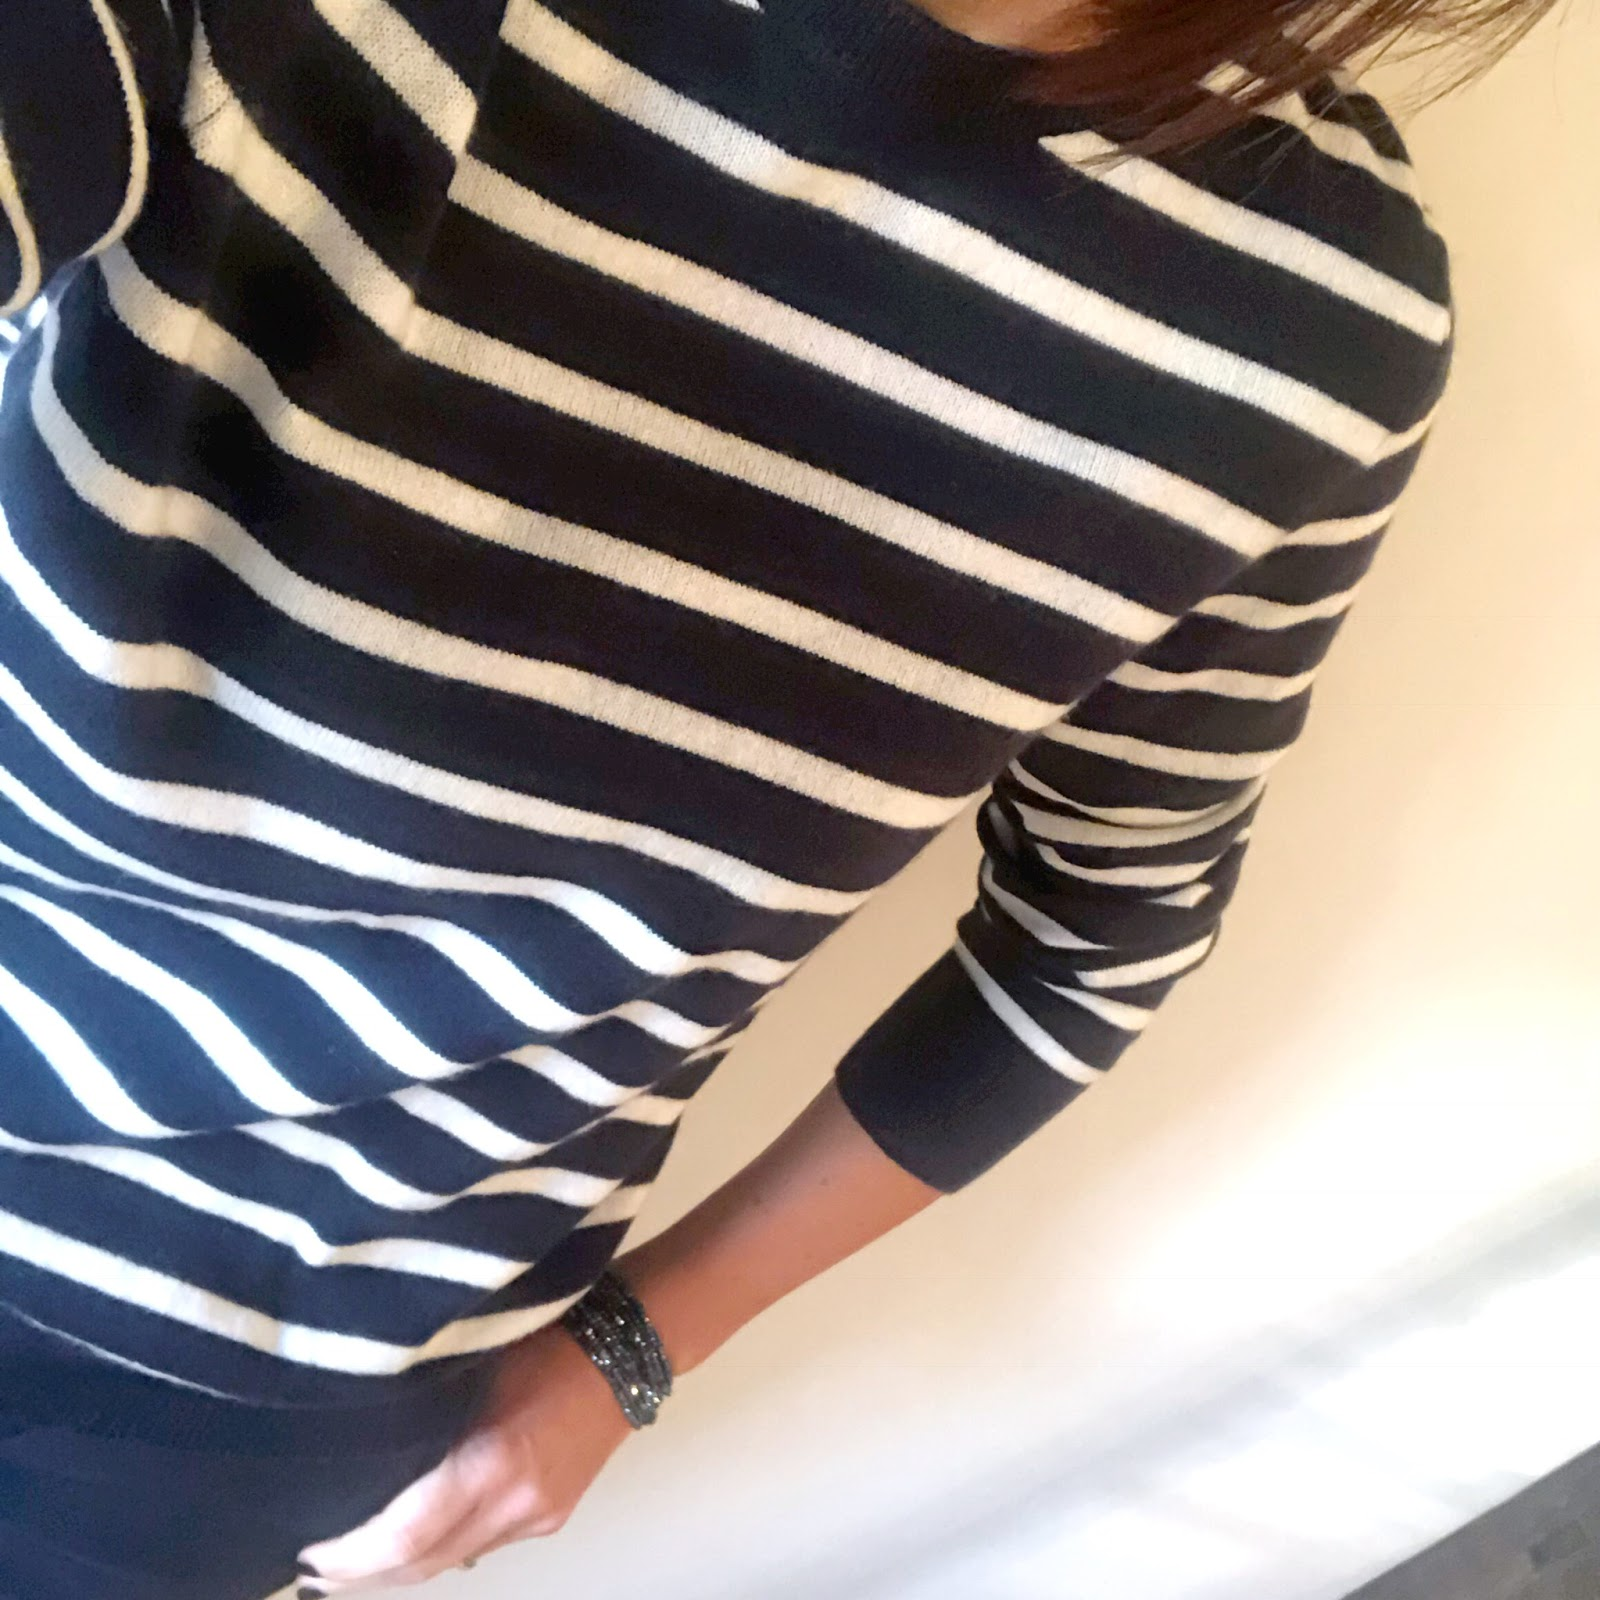 my midlife fashion, marks and spencer pure cashmere striped ribbed round neck jumper, zara gold button trousers, marks and spencer stiletto heel side zip ankle boots